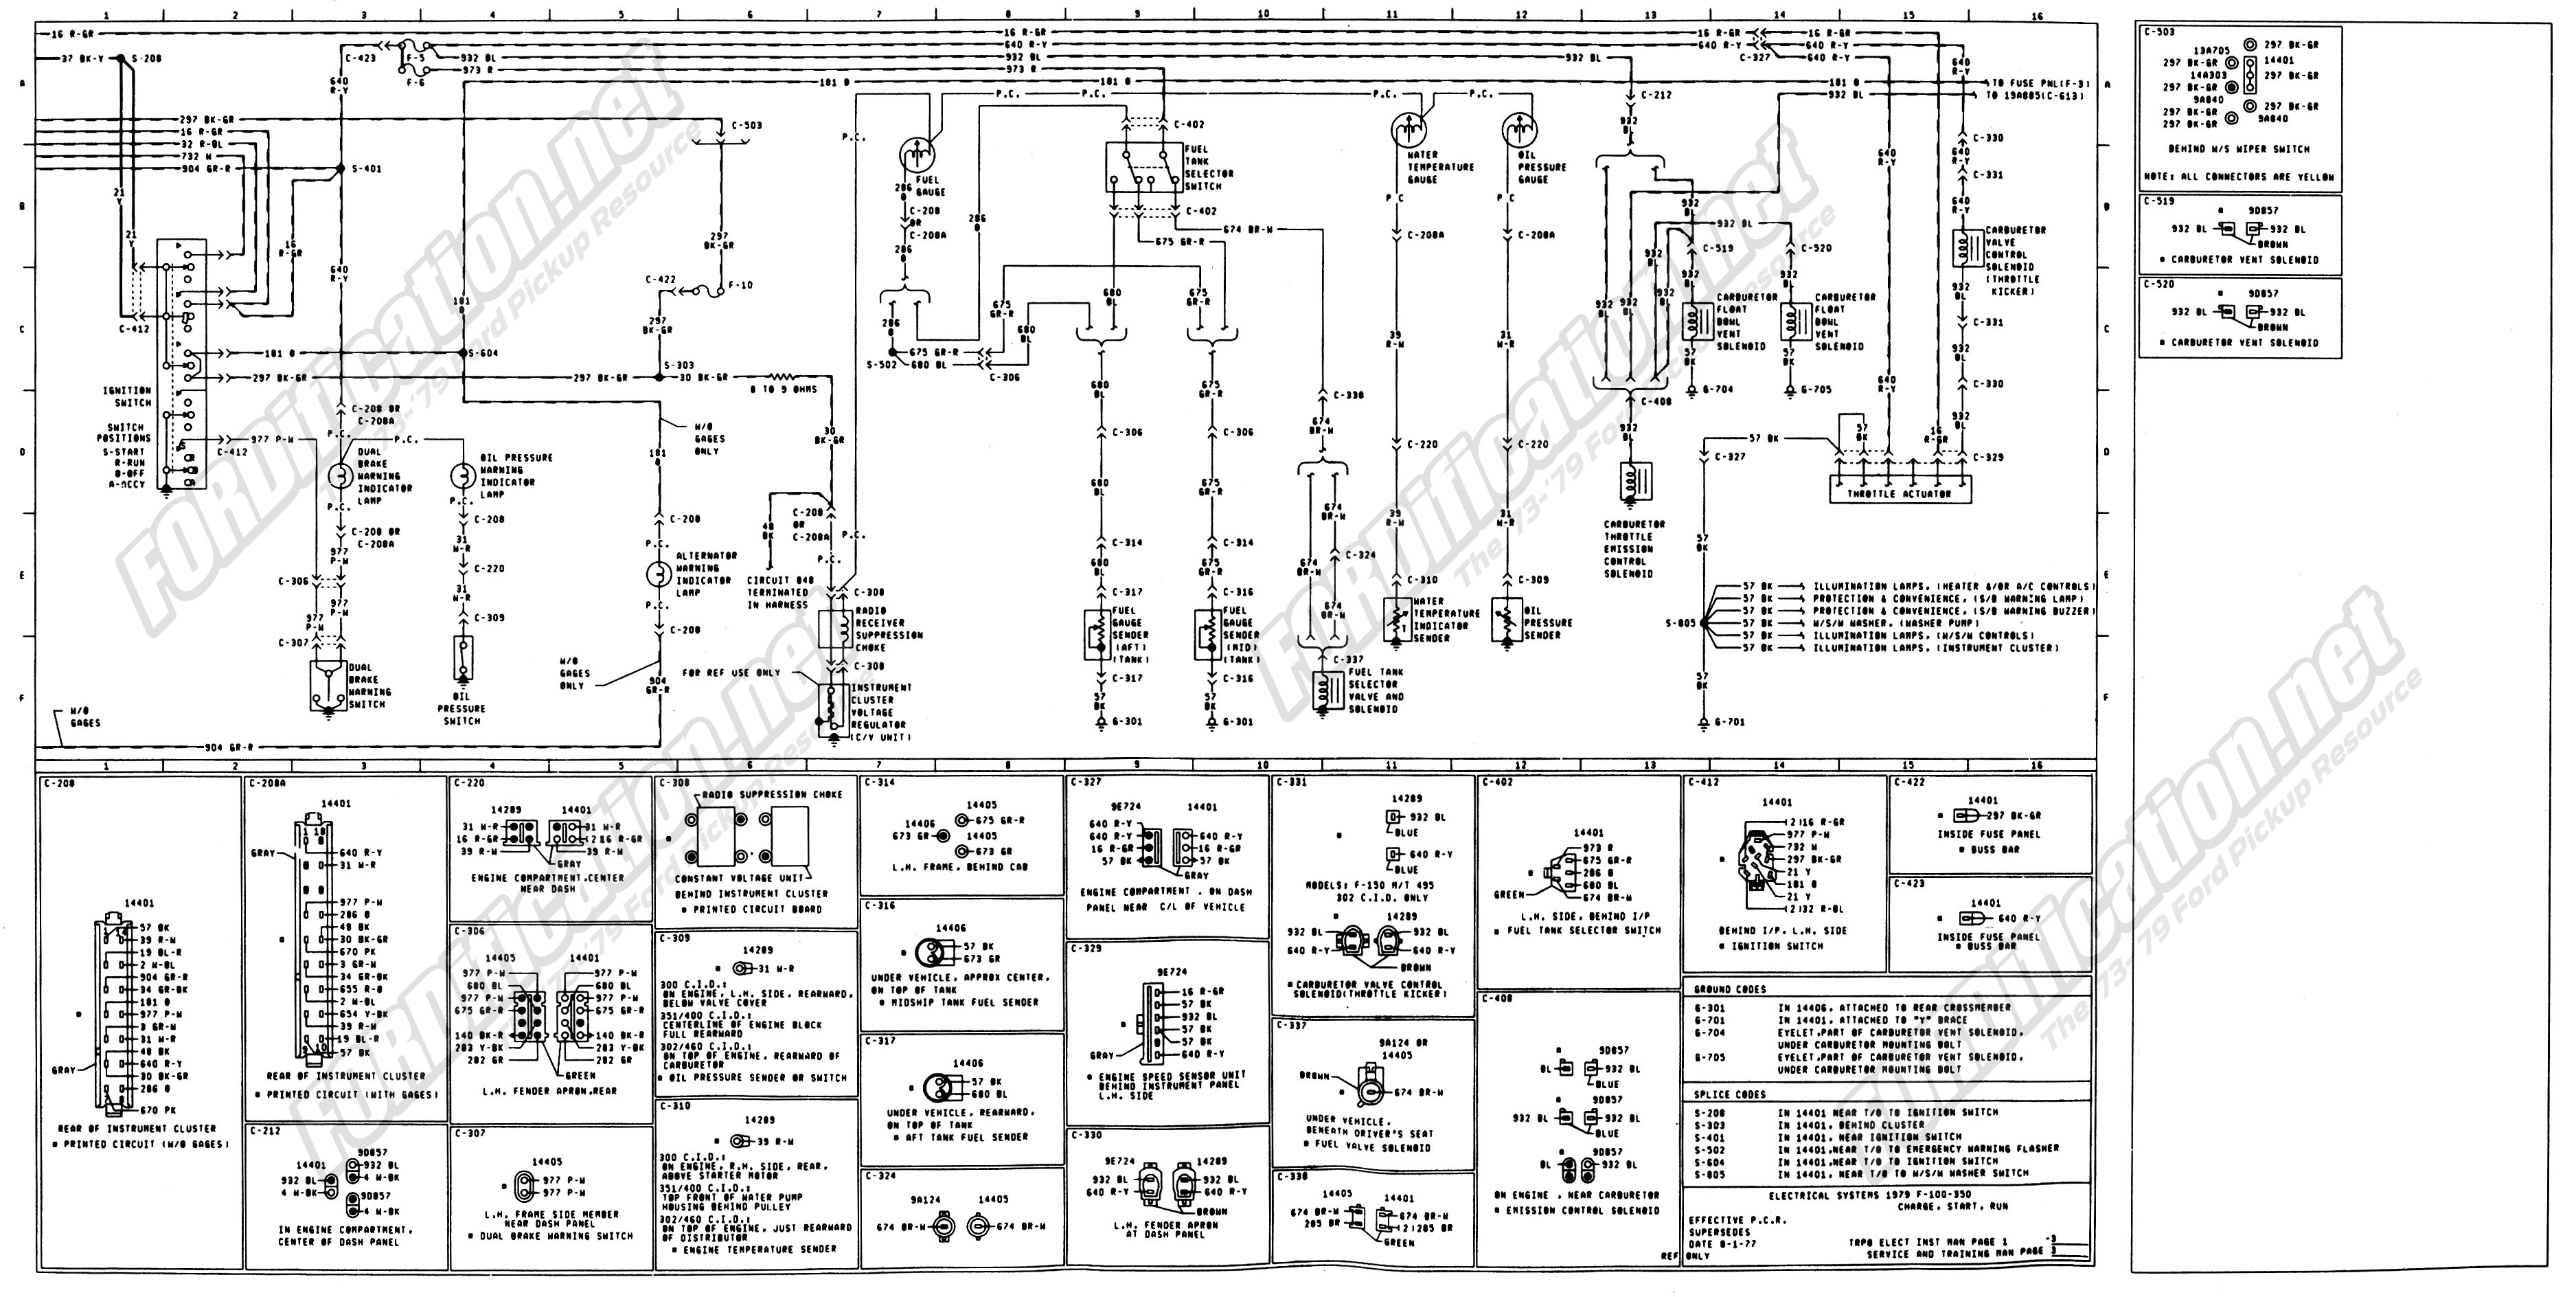 1979 ford wiring harness wiring diagram schemes ford f-150 wiring harness  diagram 1973 1979